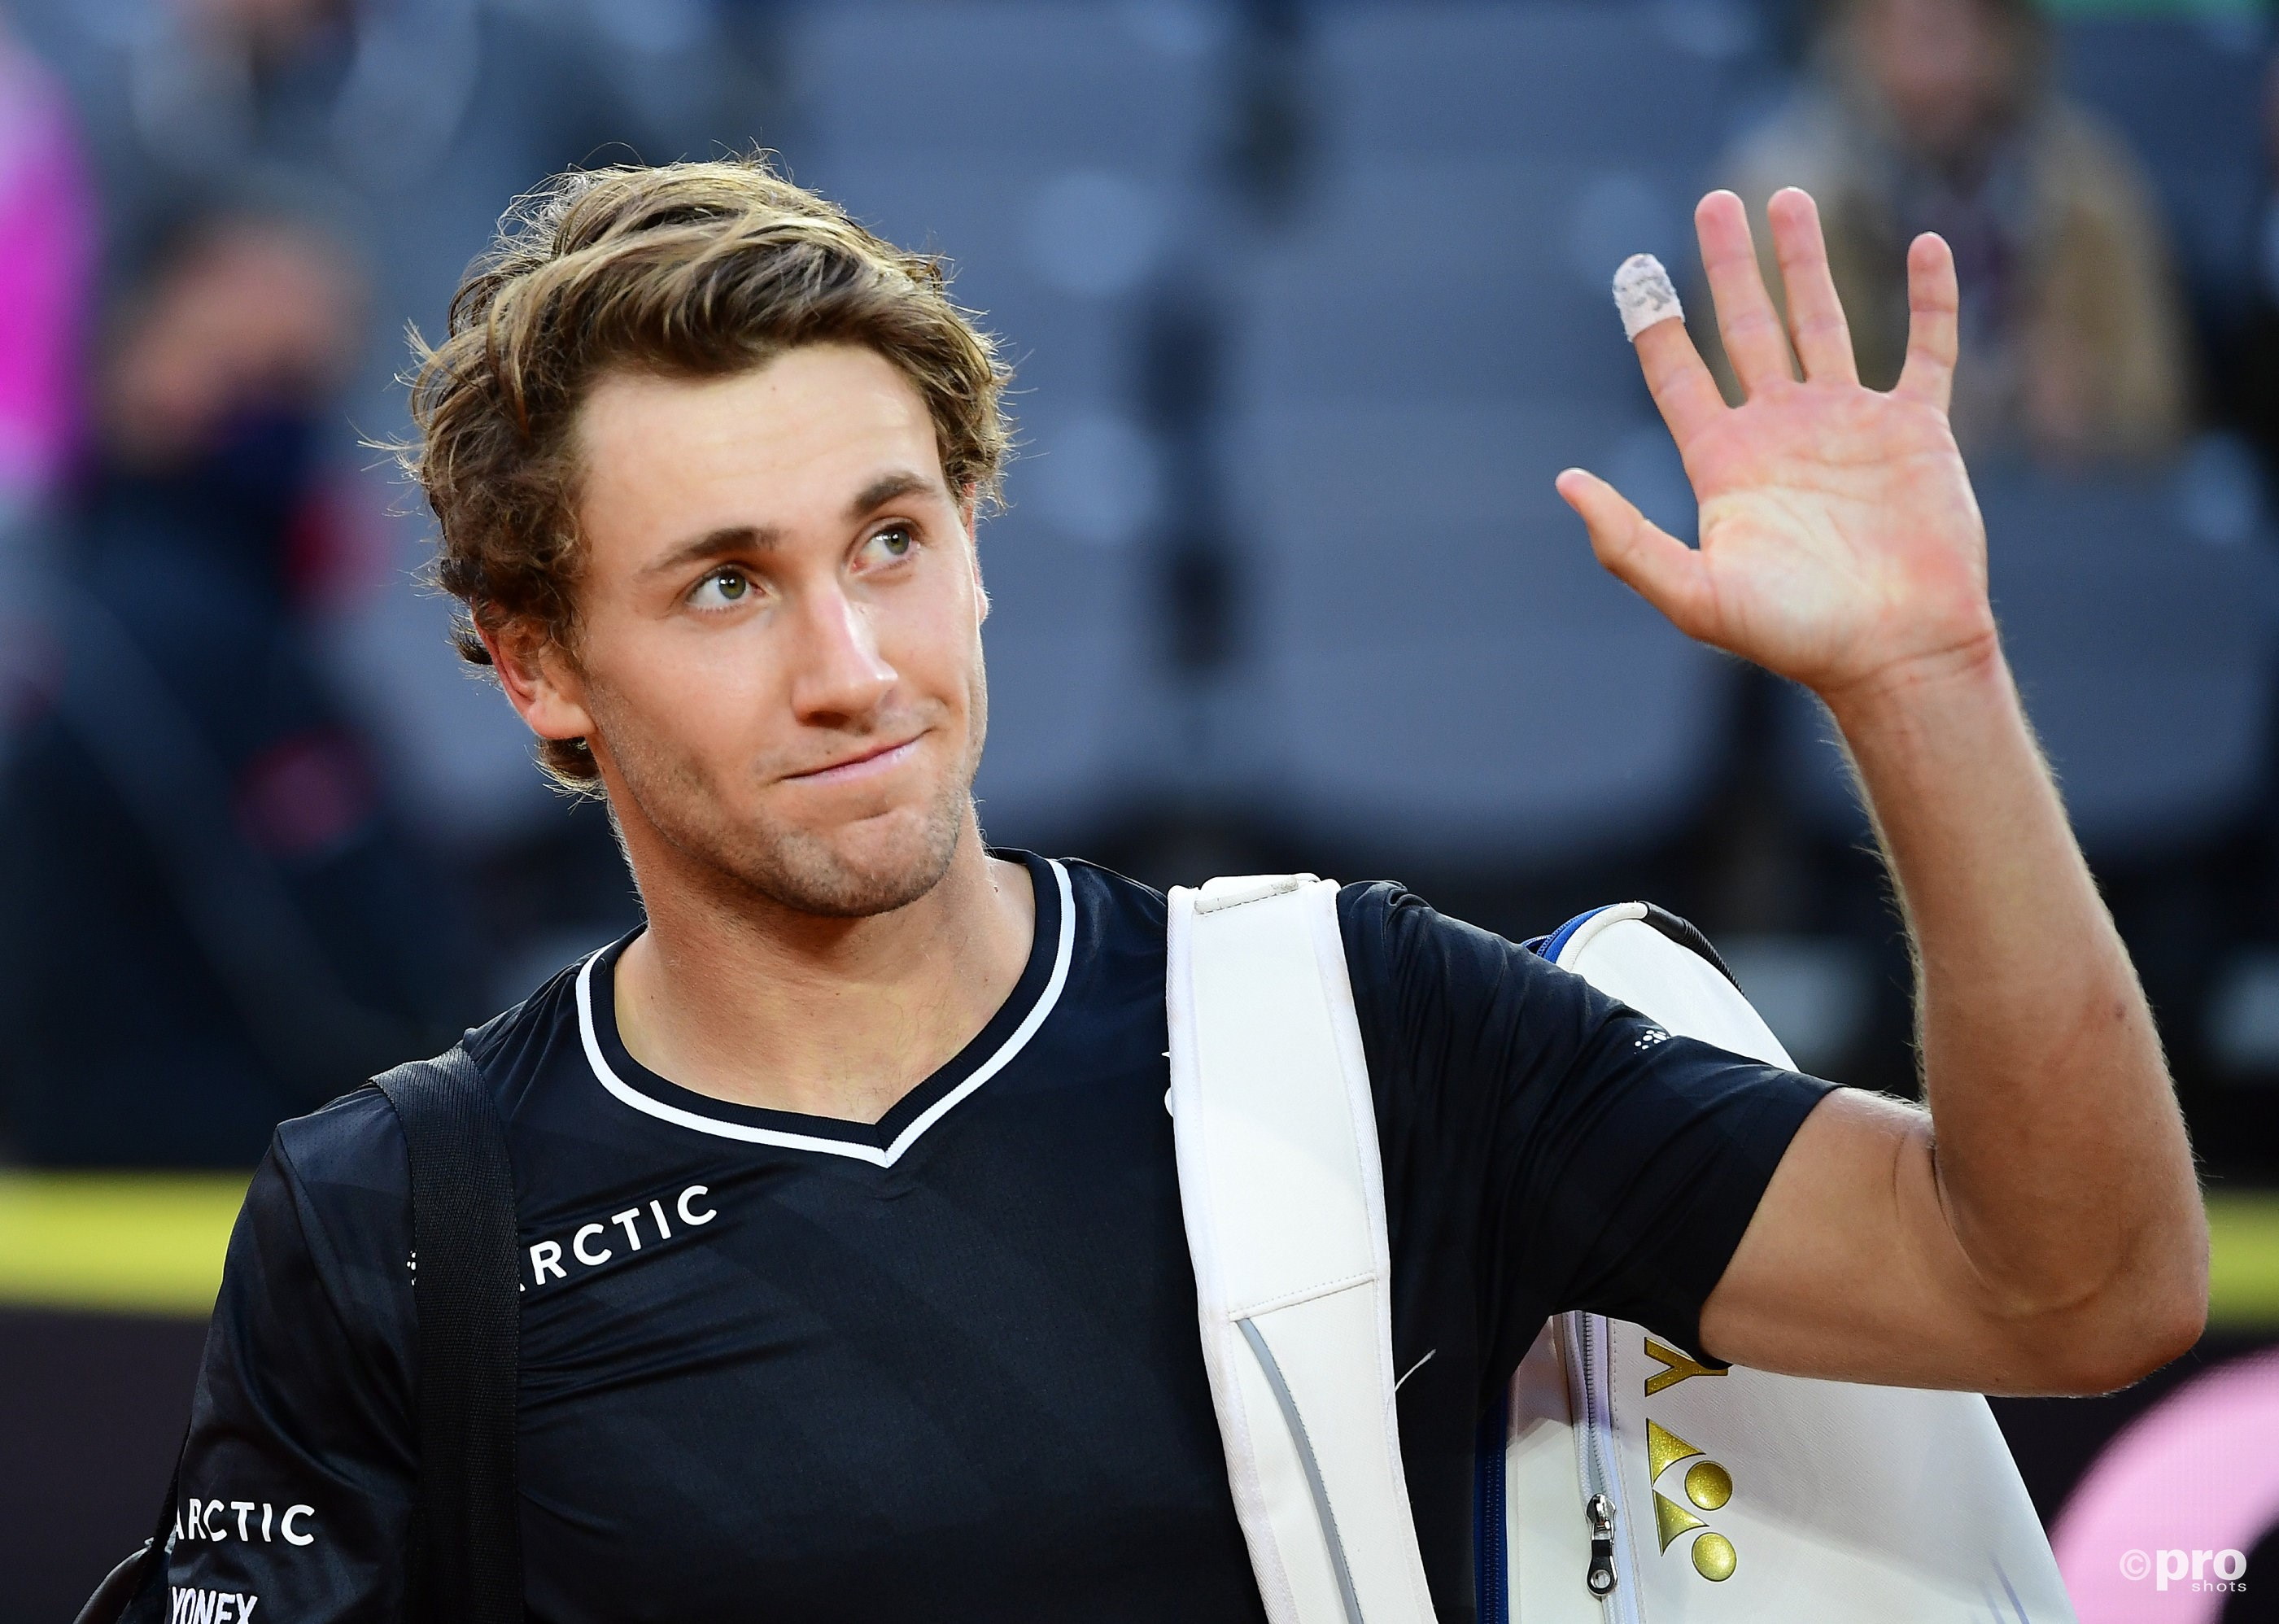 Ruud extends ATP Finals hope with win over Harris